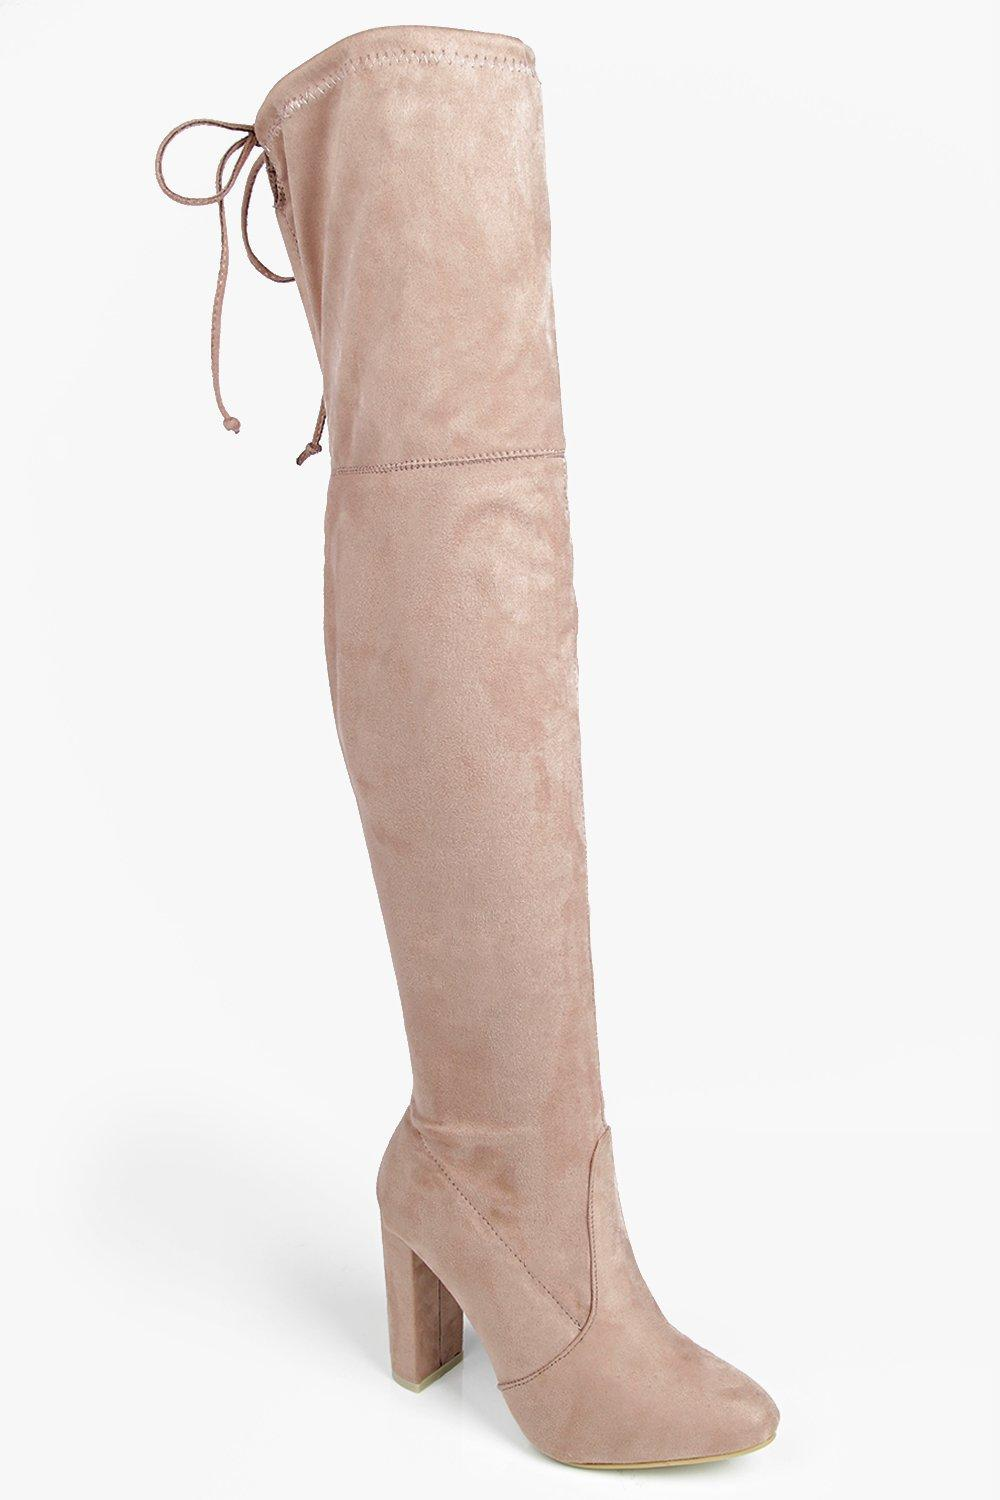 d5832119a85 Mia Block Heel Lace Up Back Over Knee Boot